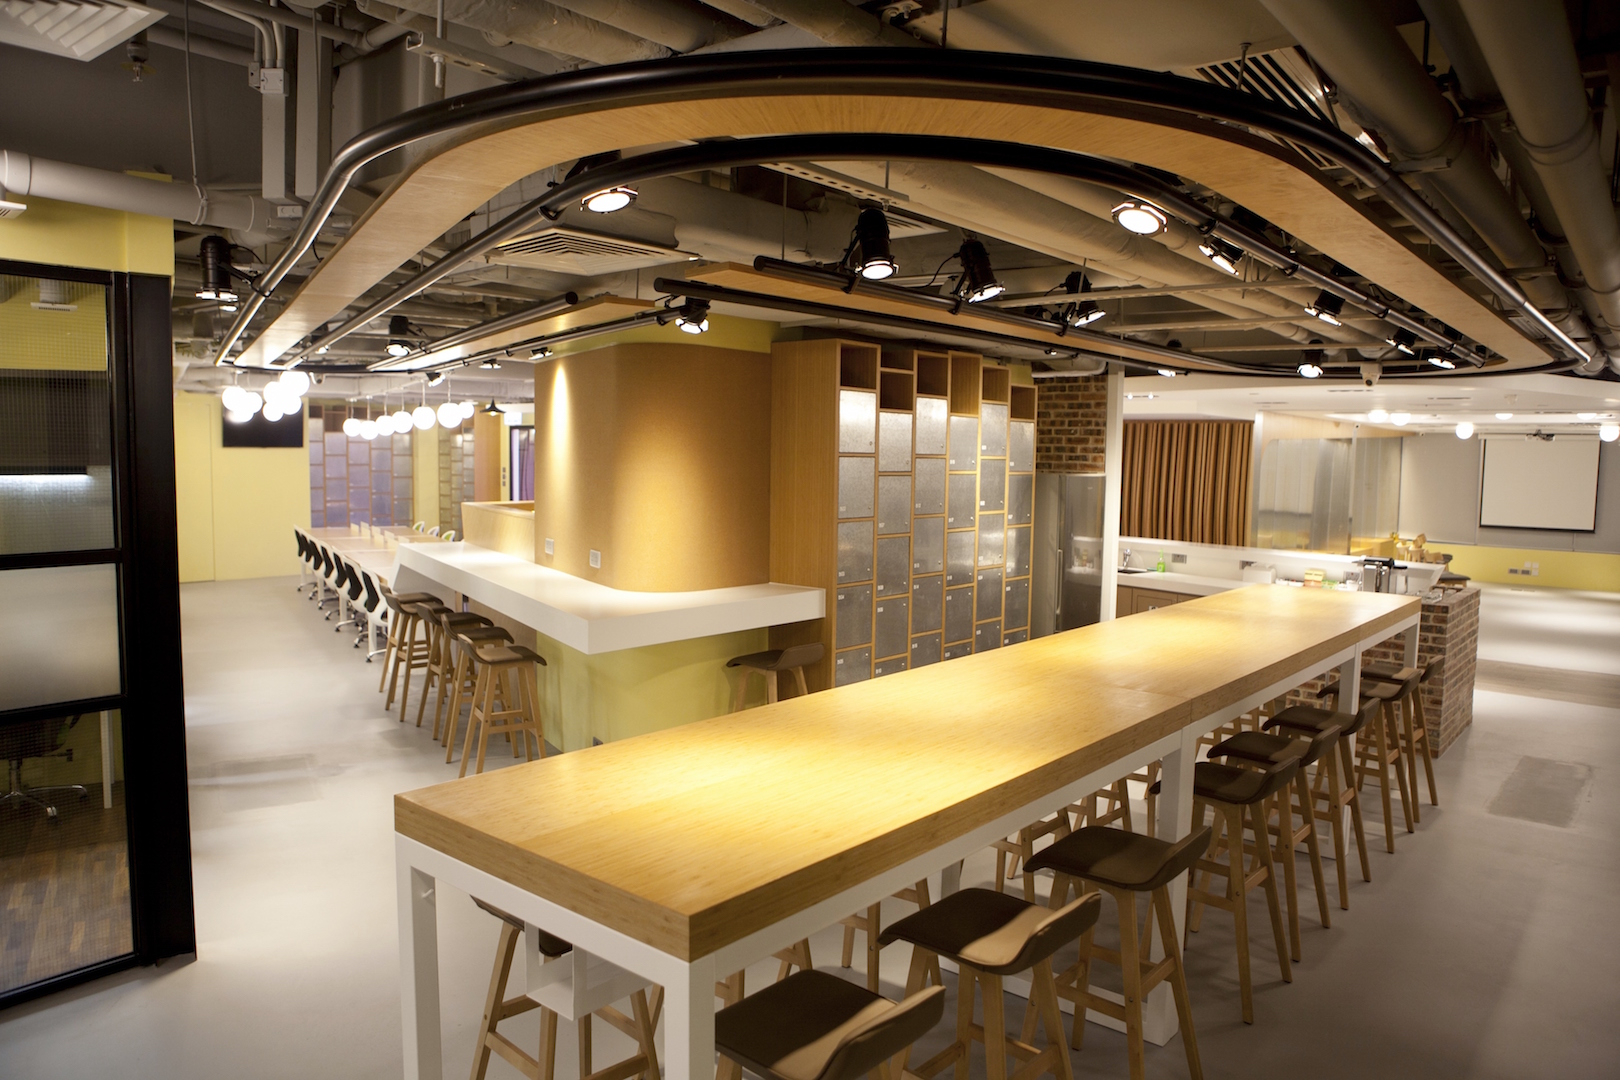 Kowrk Paperclip Shared Office Space Sheung Wan, Hong Kong